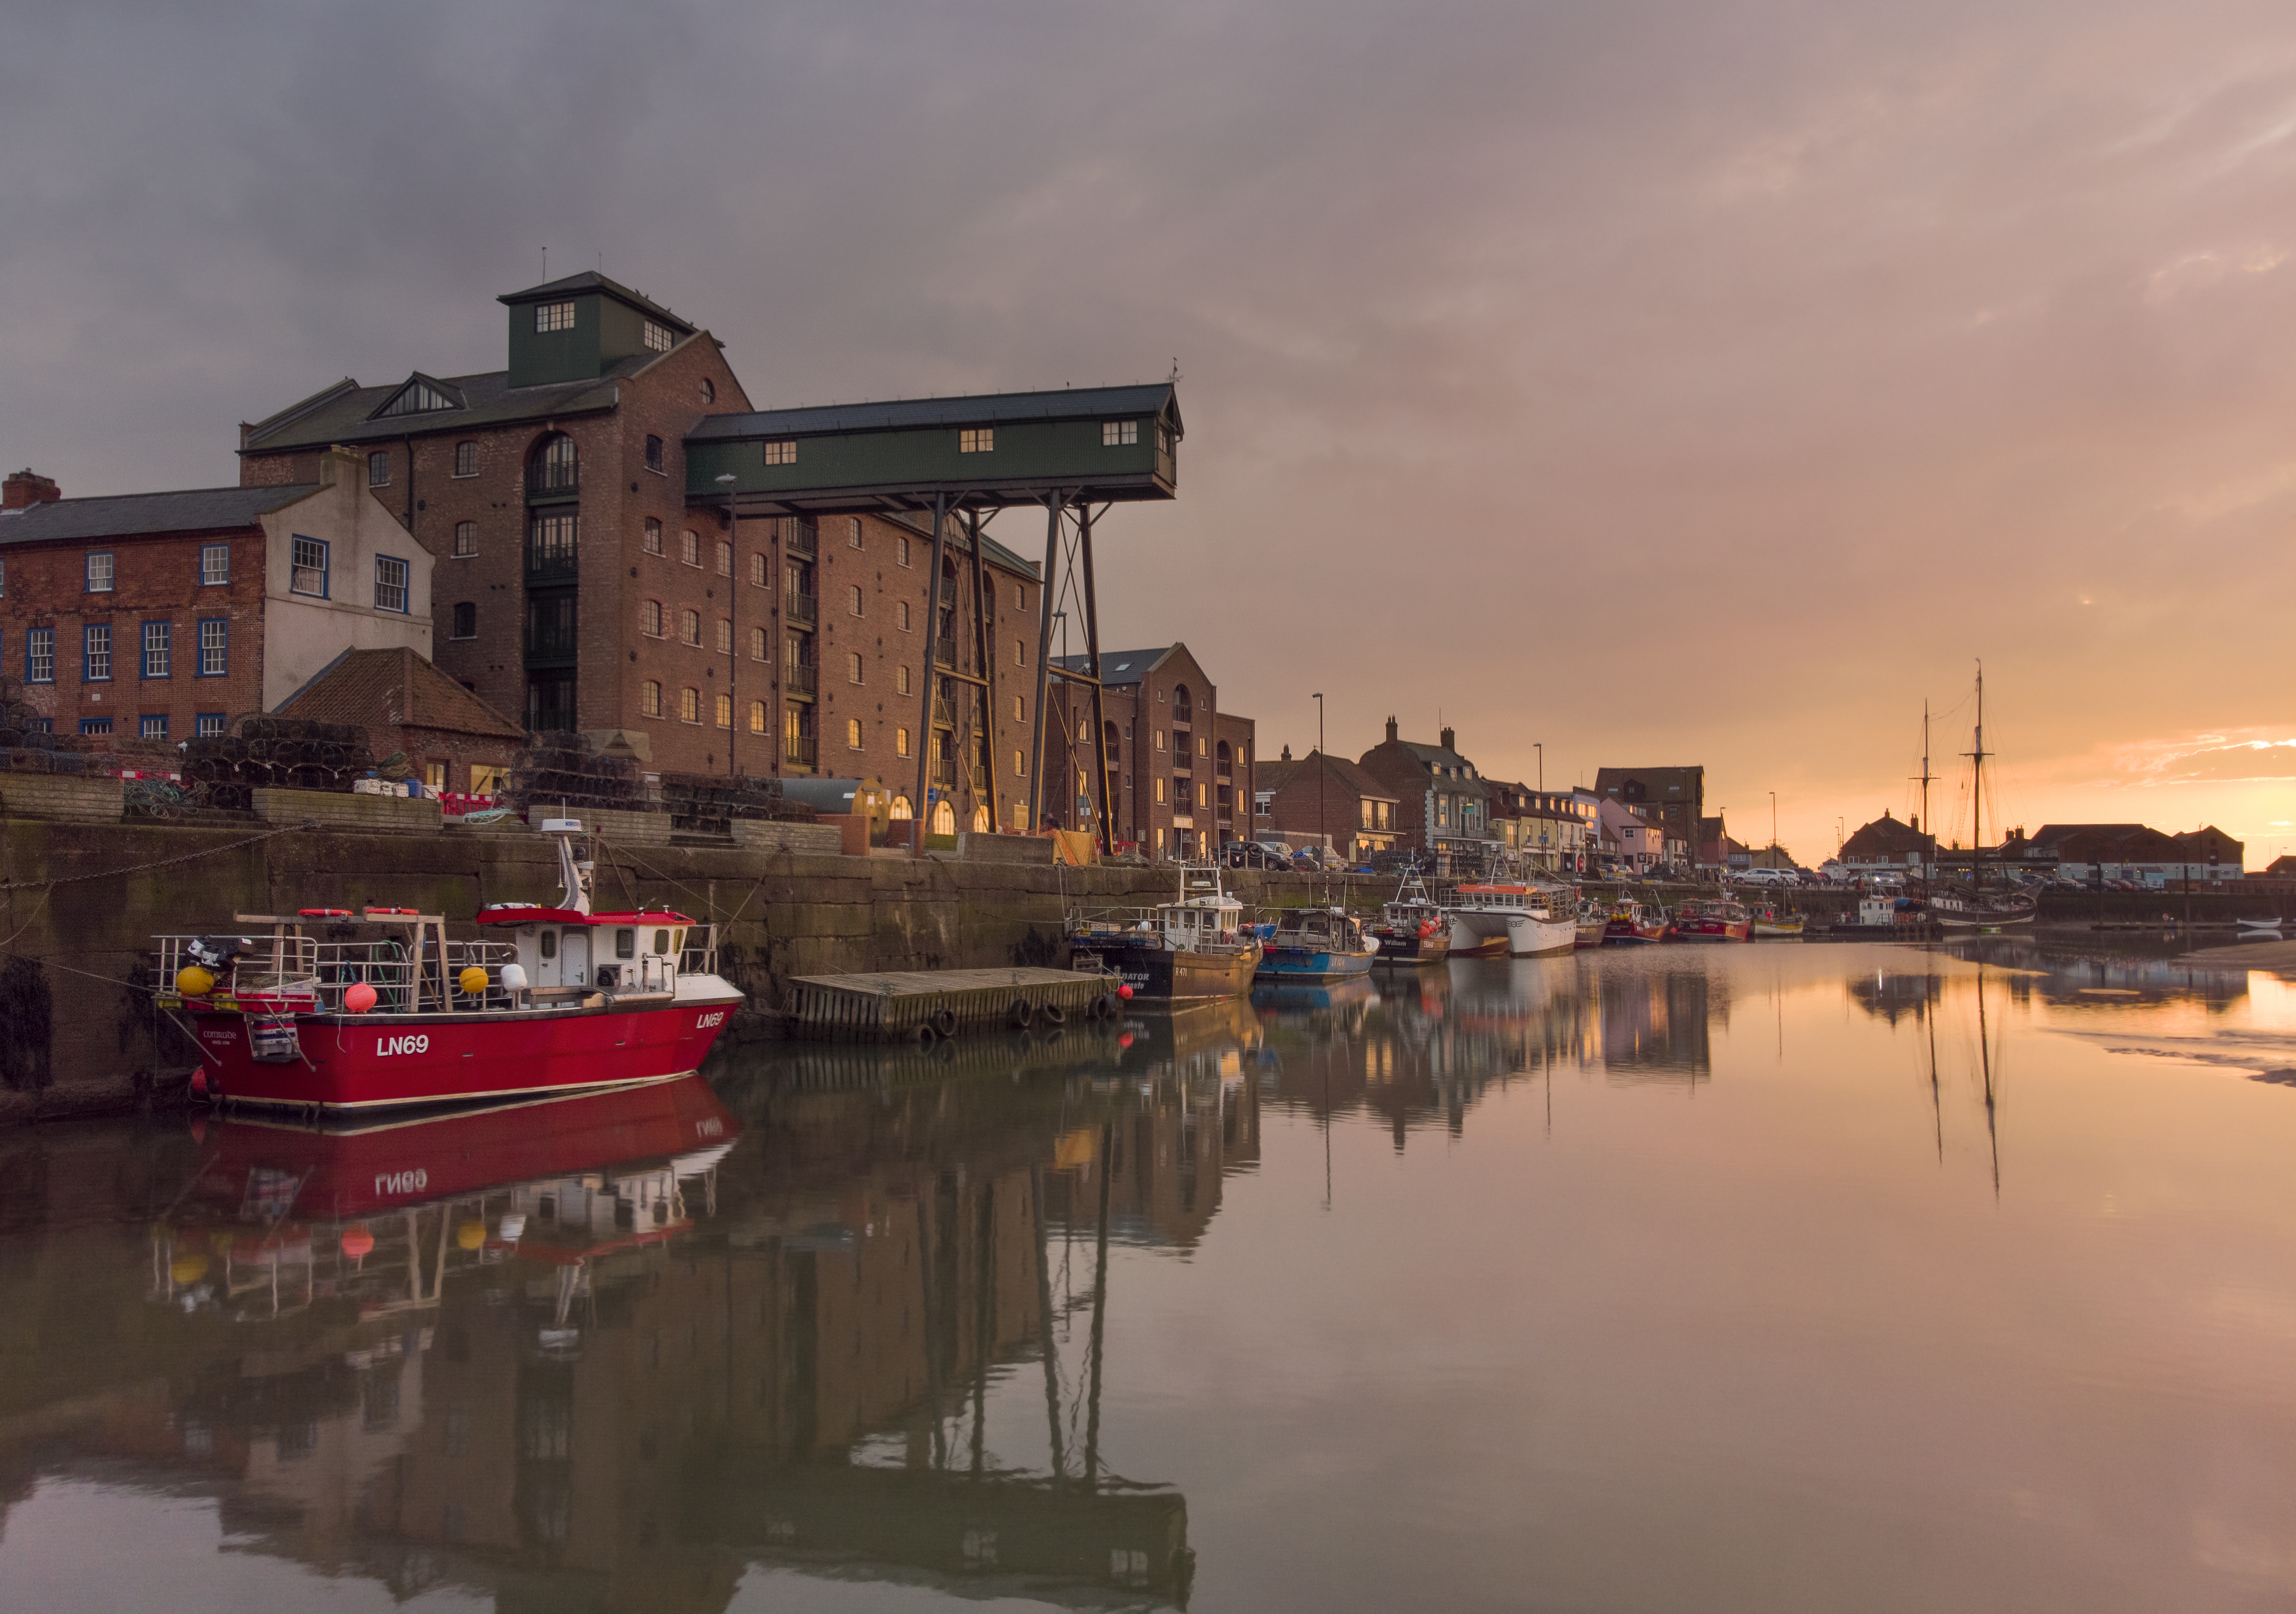 the granary at sunset